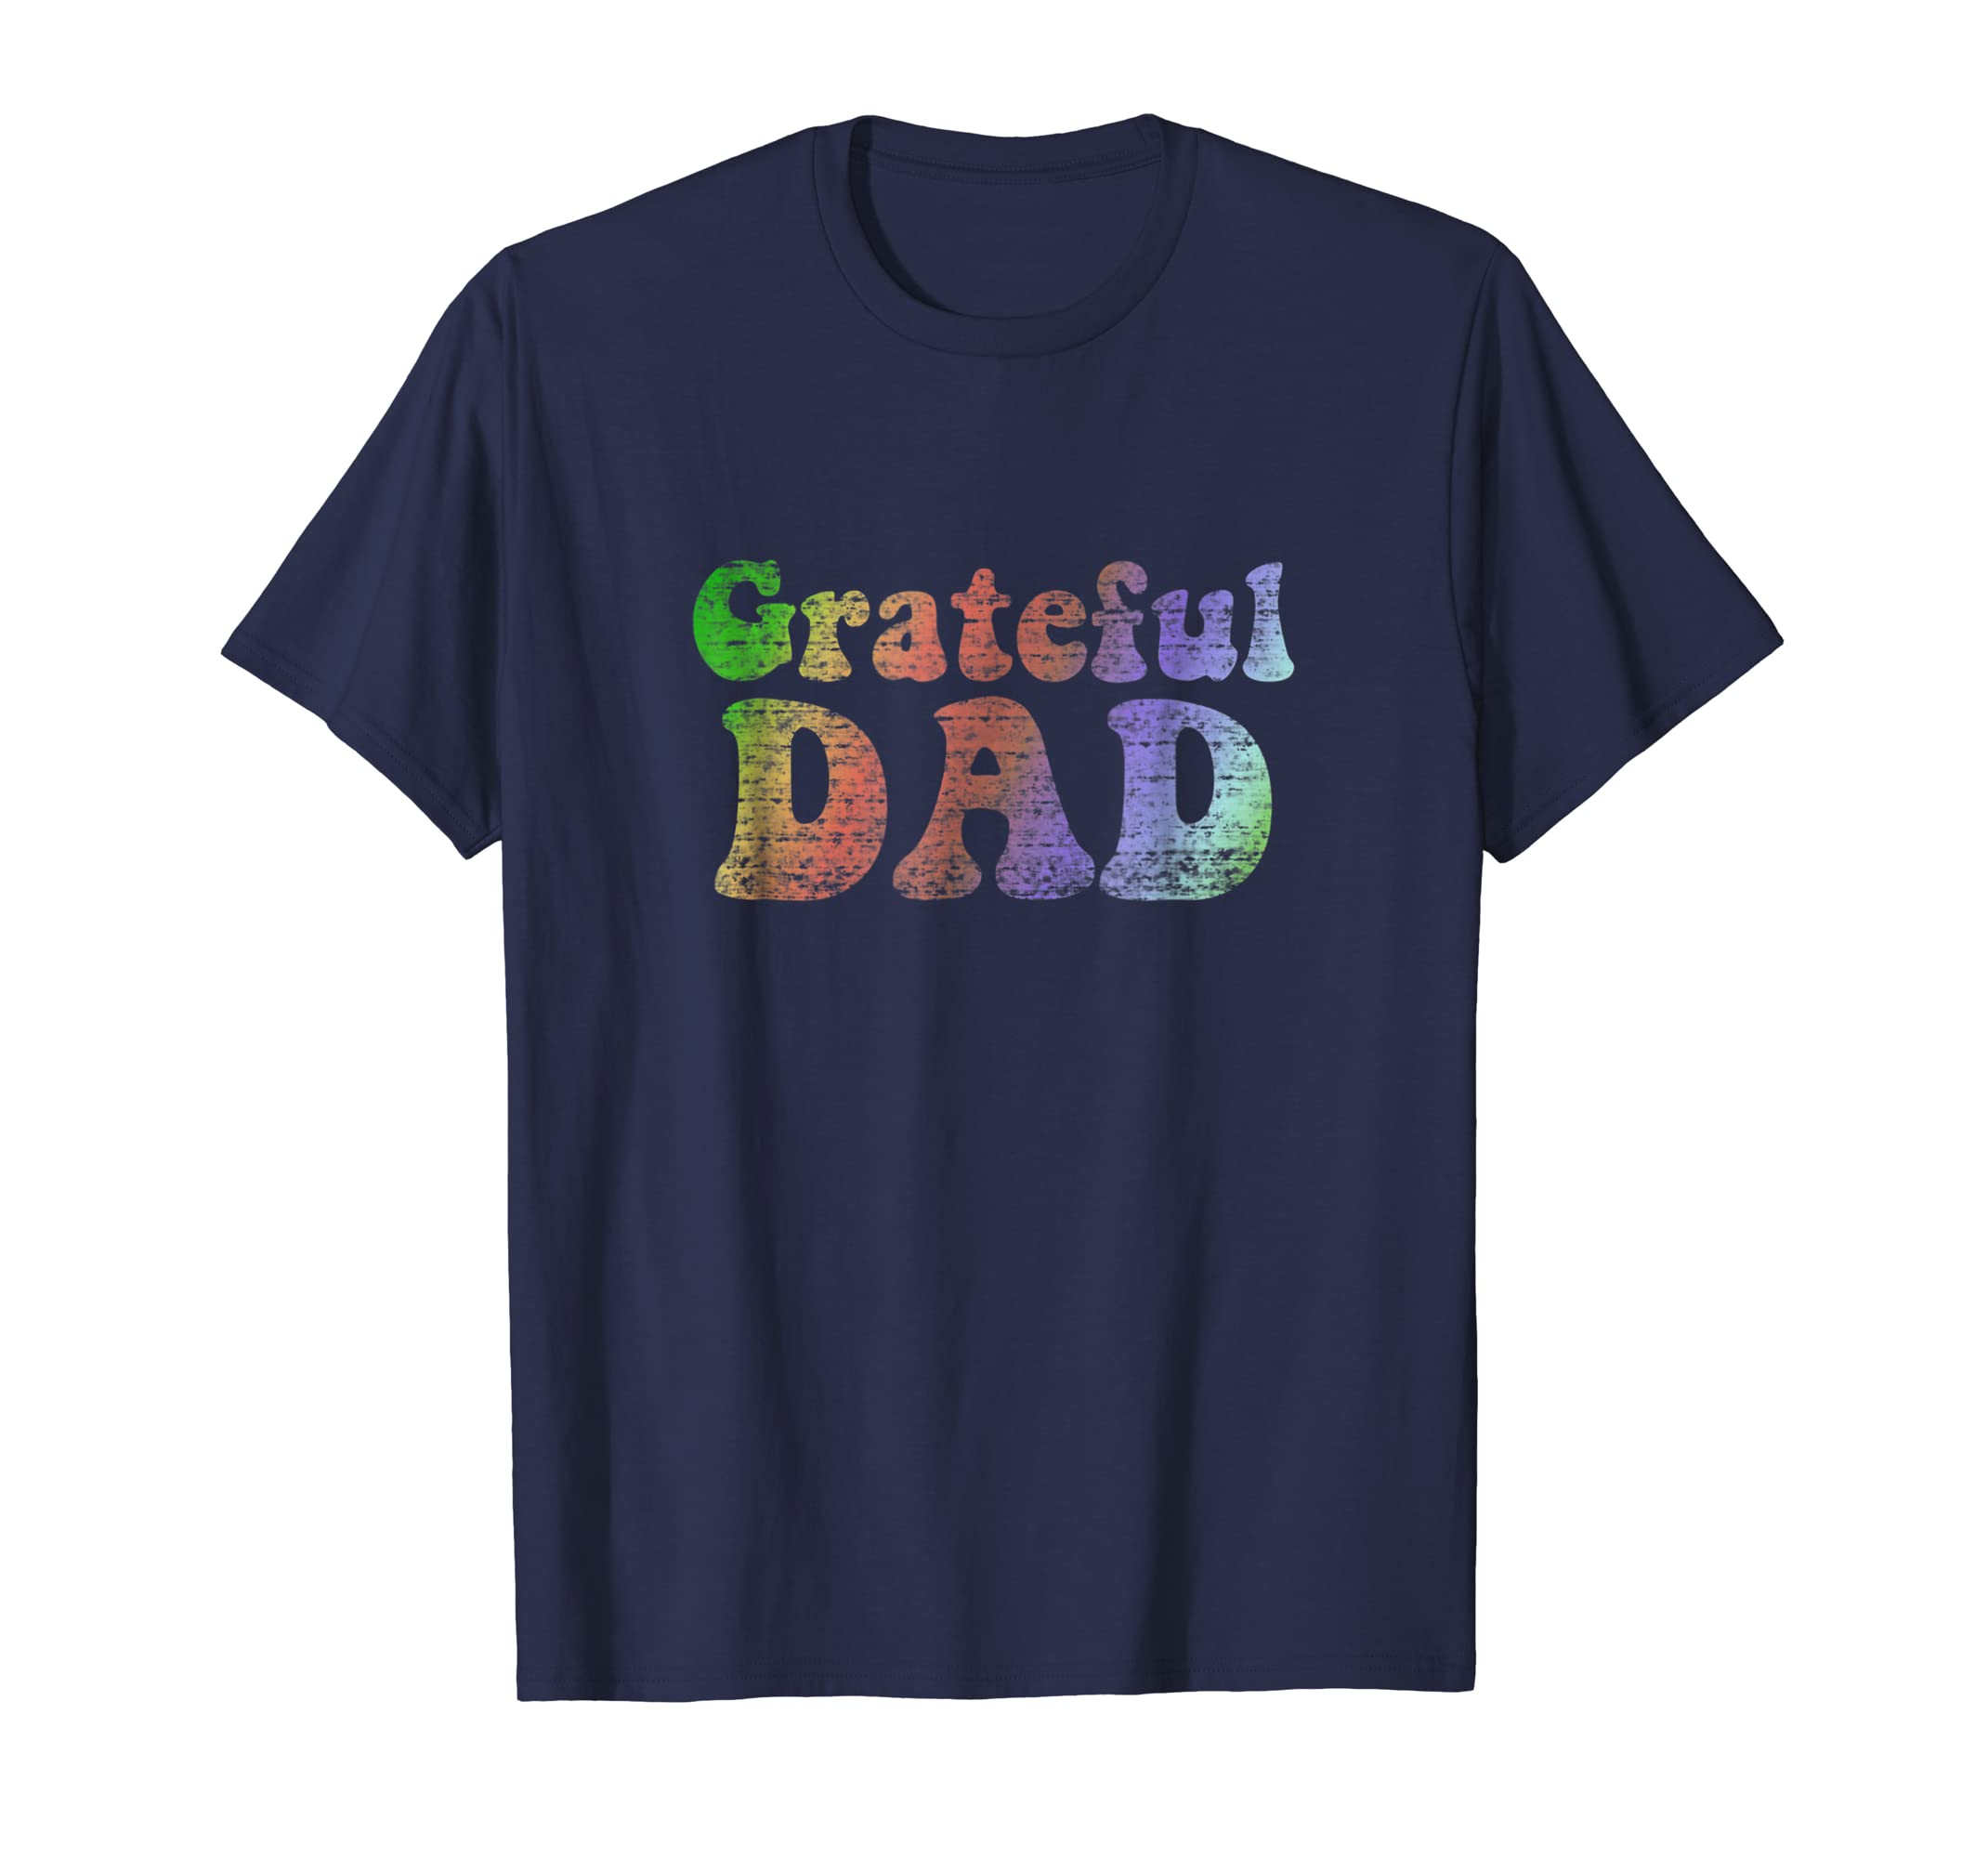 5531c1fd Amazon.com: Mens Grateful Dad T-Shirt Vintage Tee Father's Day Gift:  Clothing